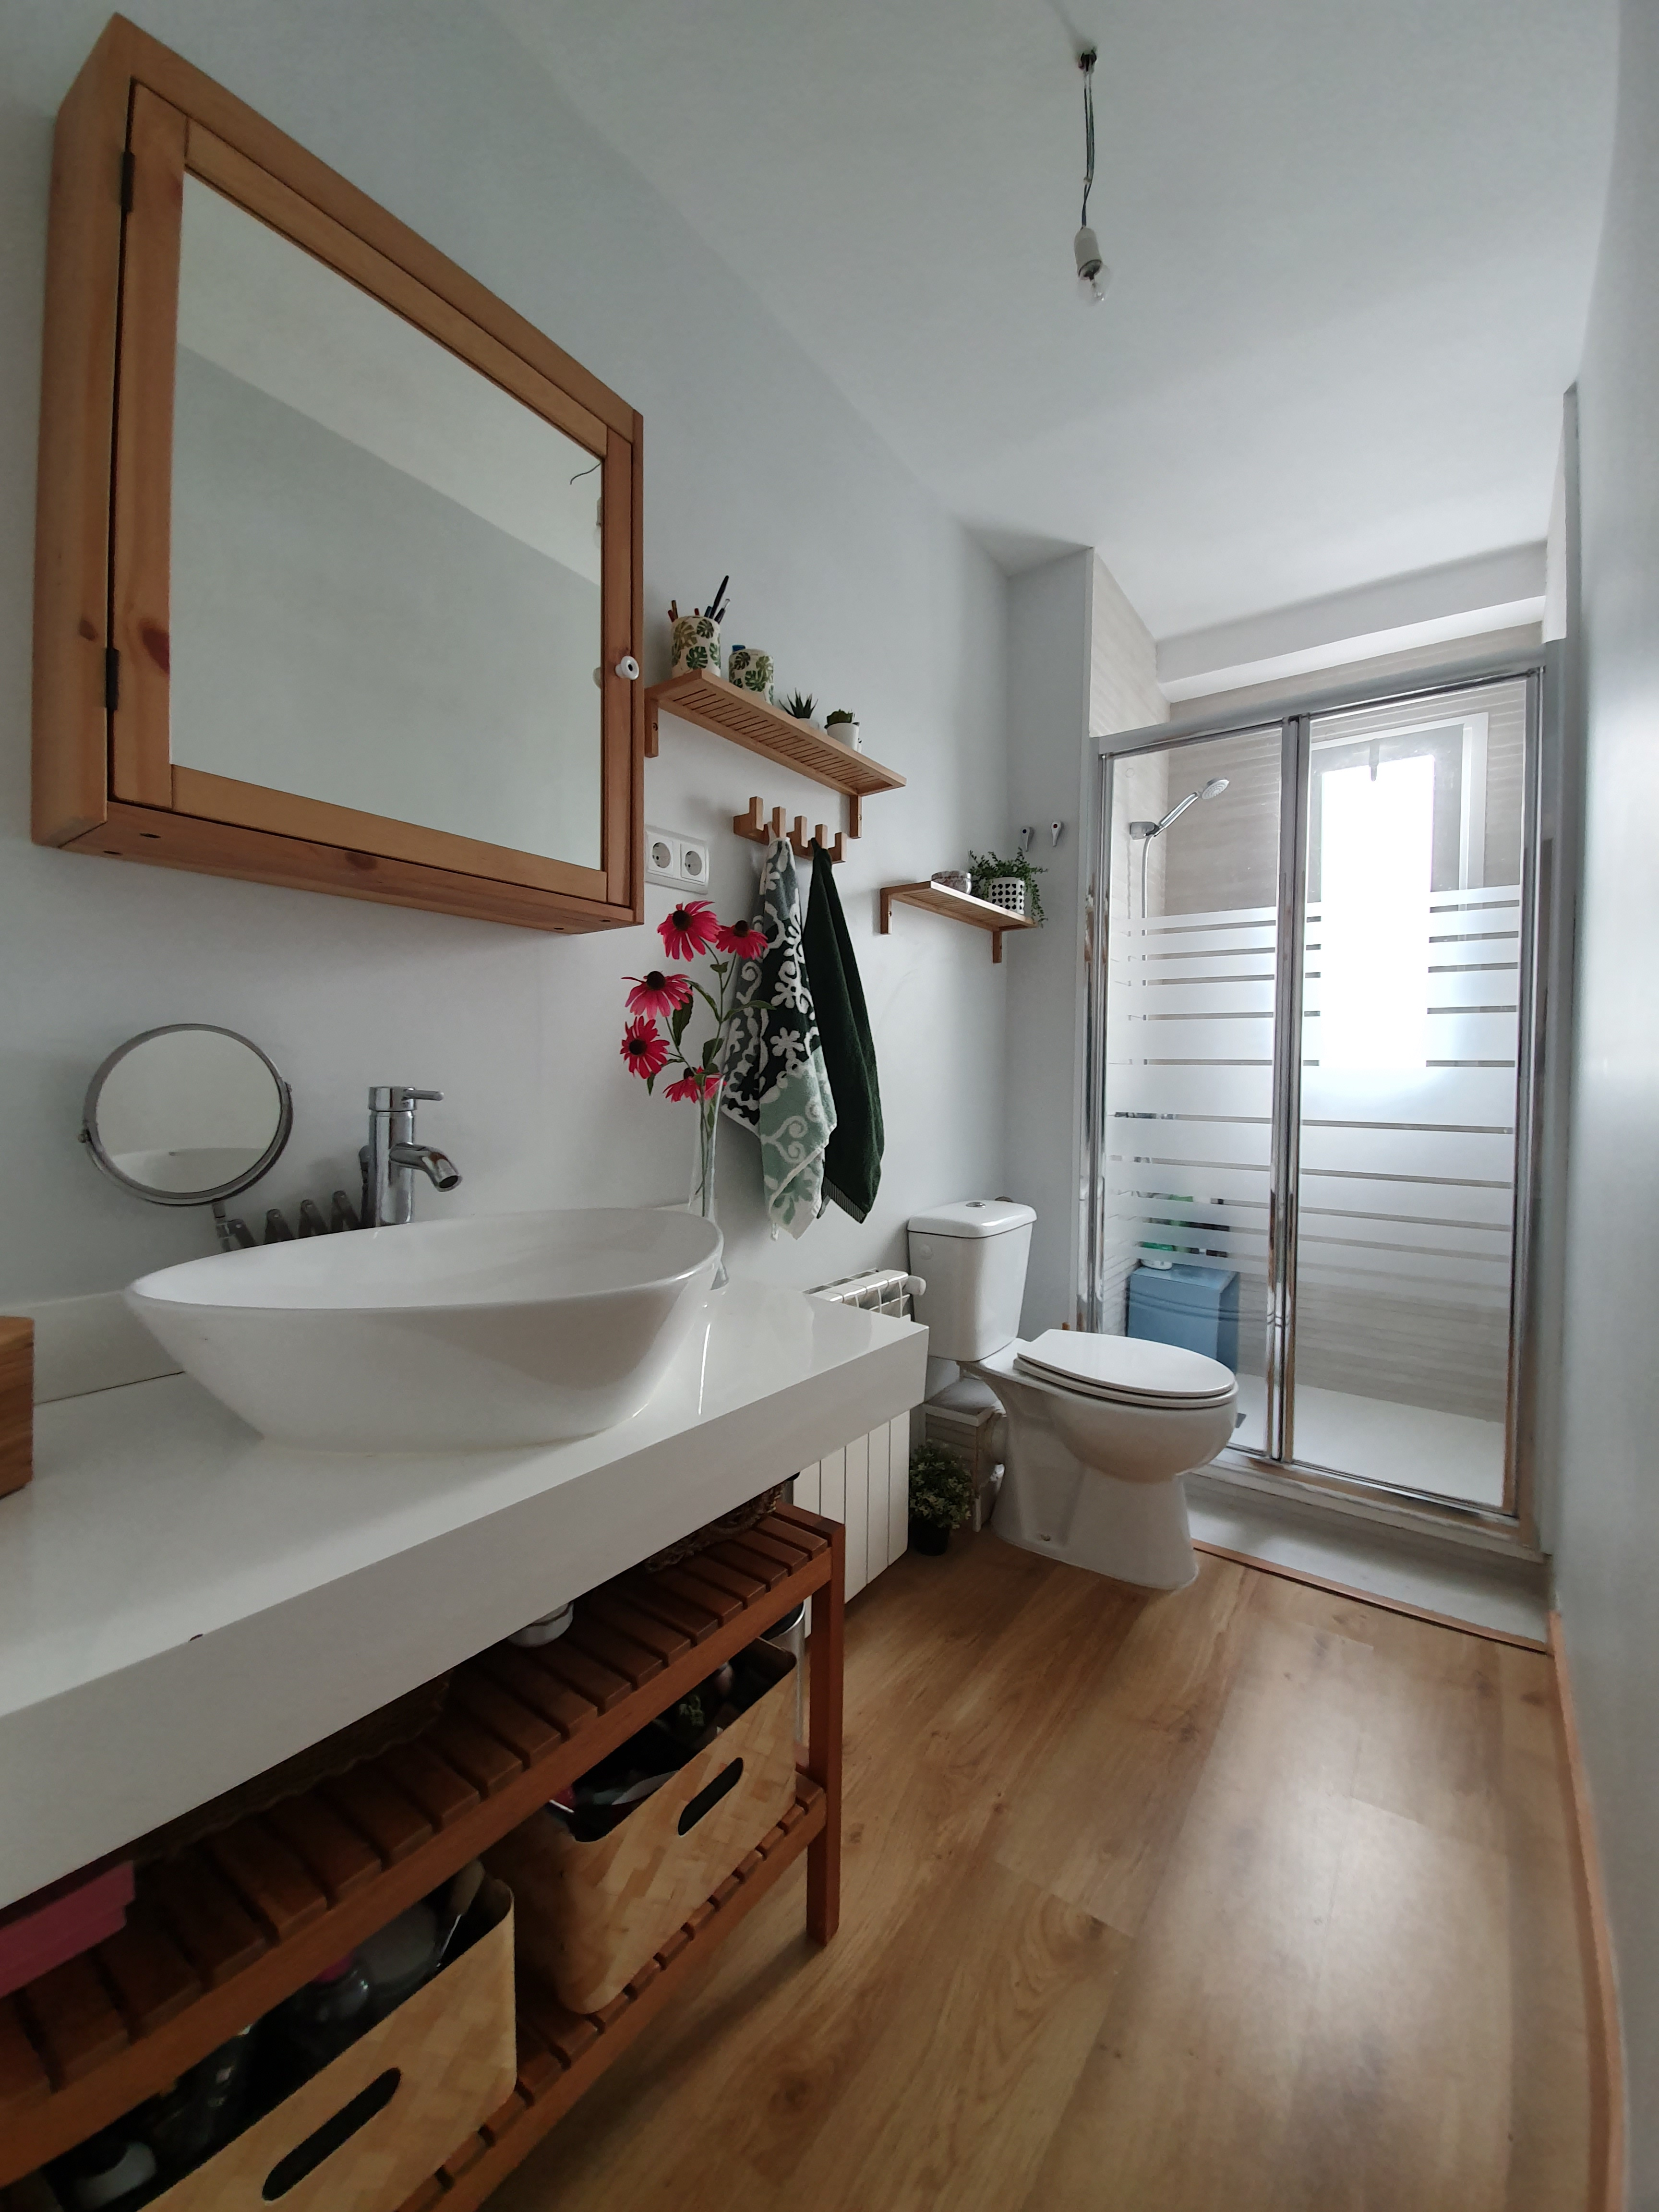 Home staging padron madrid - Home staging madrid ...